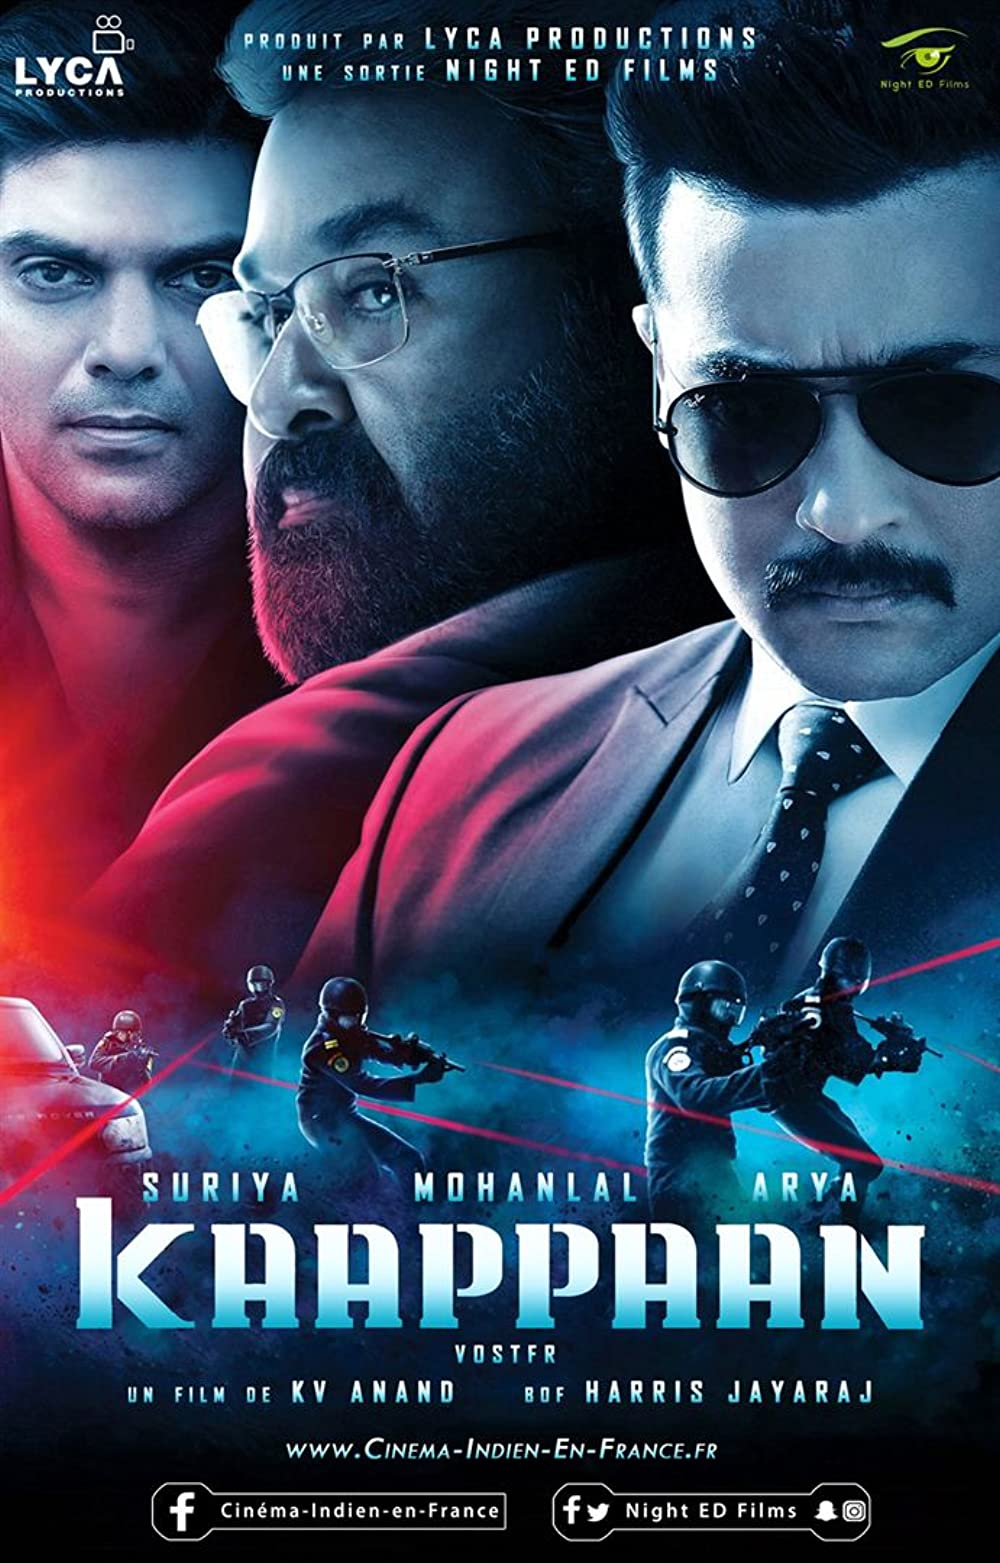 Rowdy Rakshak (Kaappaan) 2021 South Hindi Dubbed Movie HDRip UNCUT